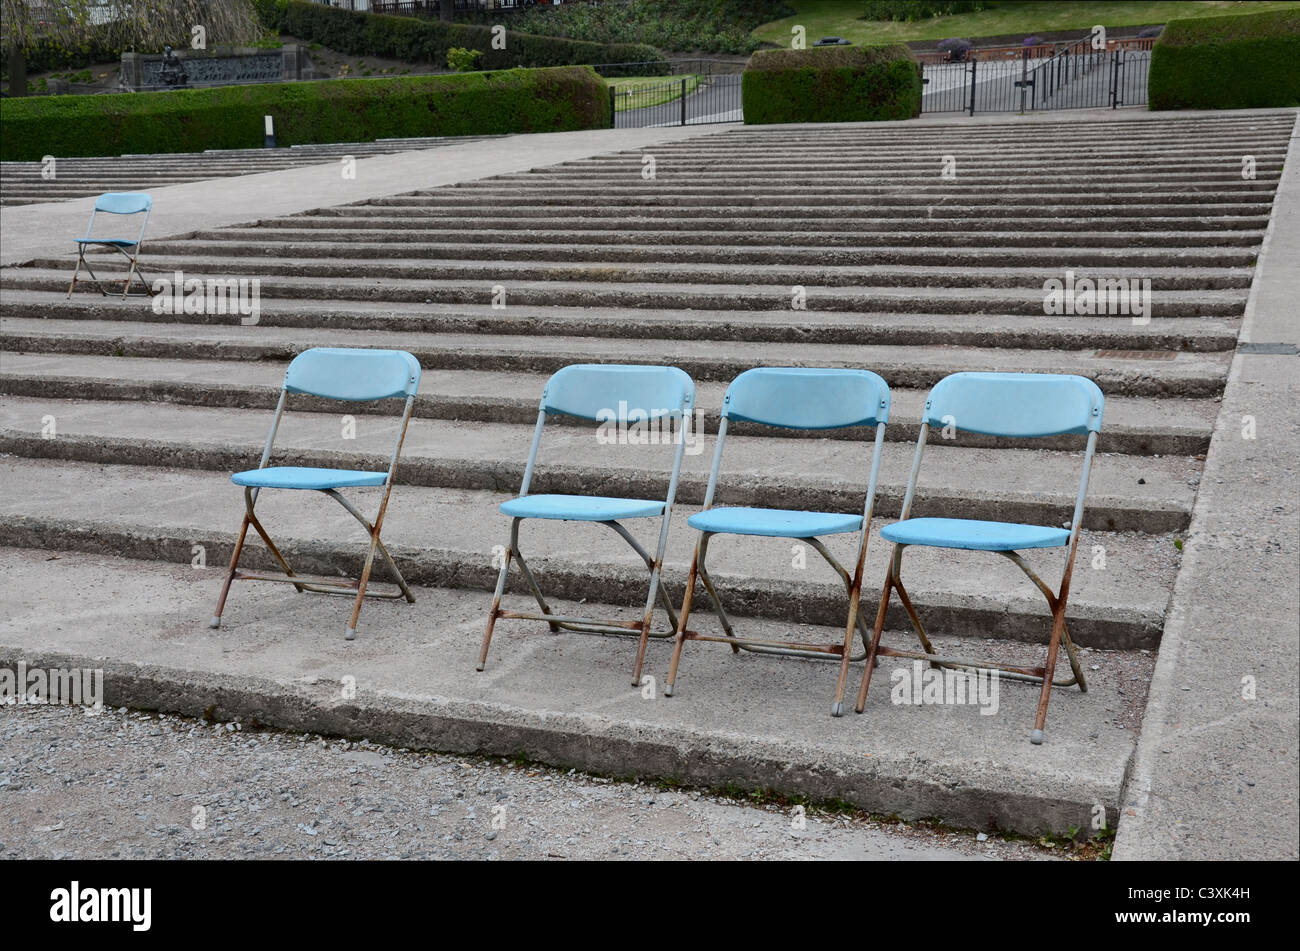 Rusting blue seats at the Ross Bandstand in Princes Street Gardens, Edinburgh, Scotland, UK - Stock Image